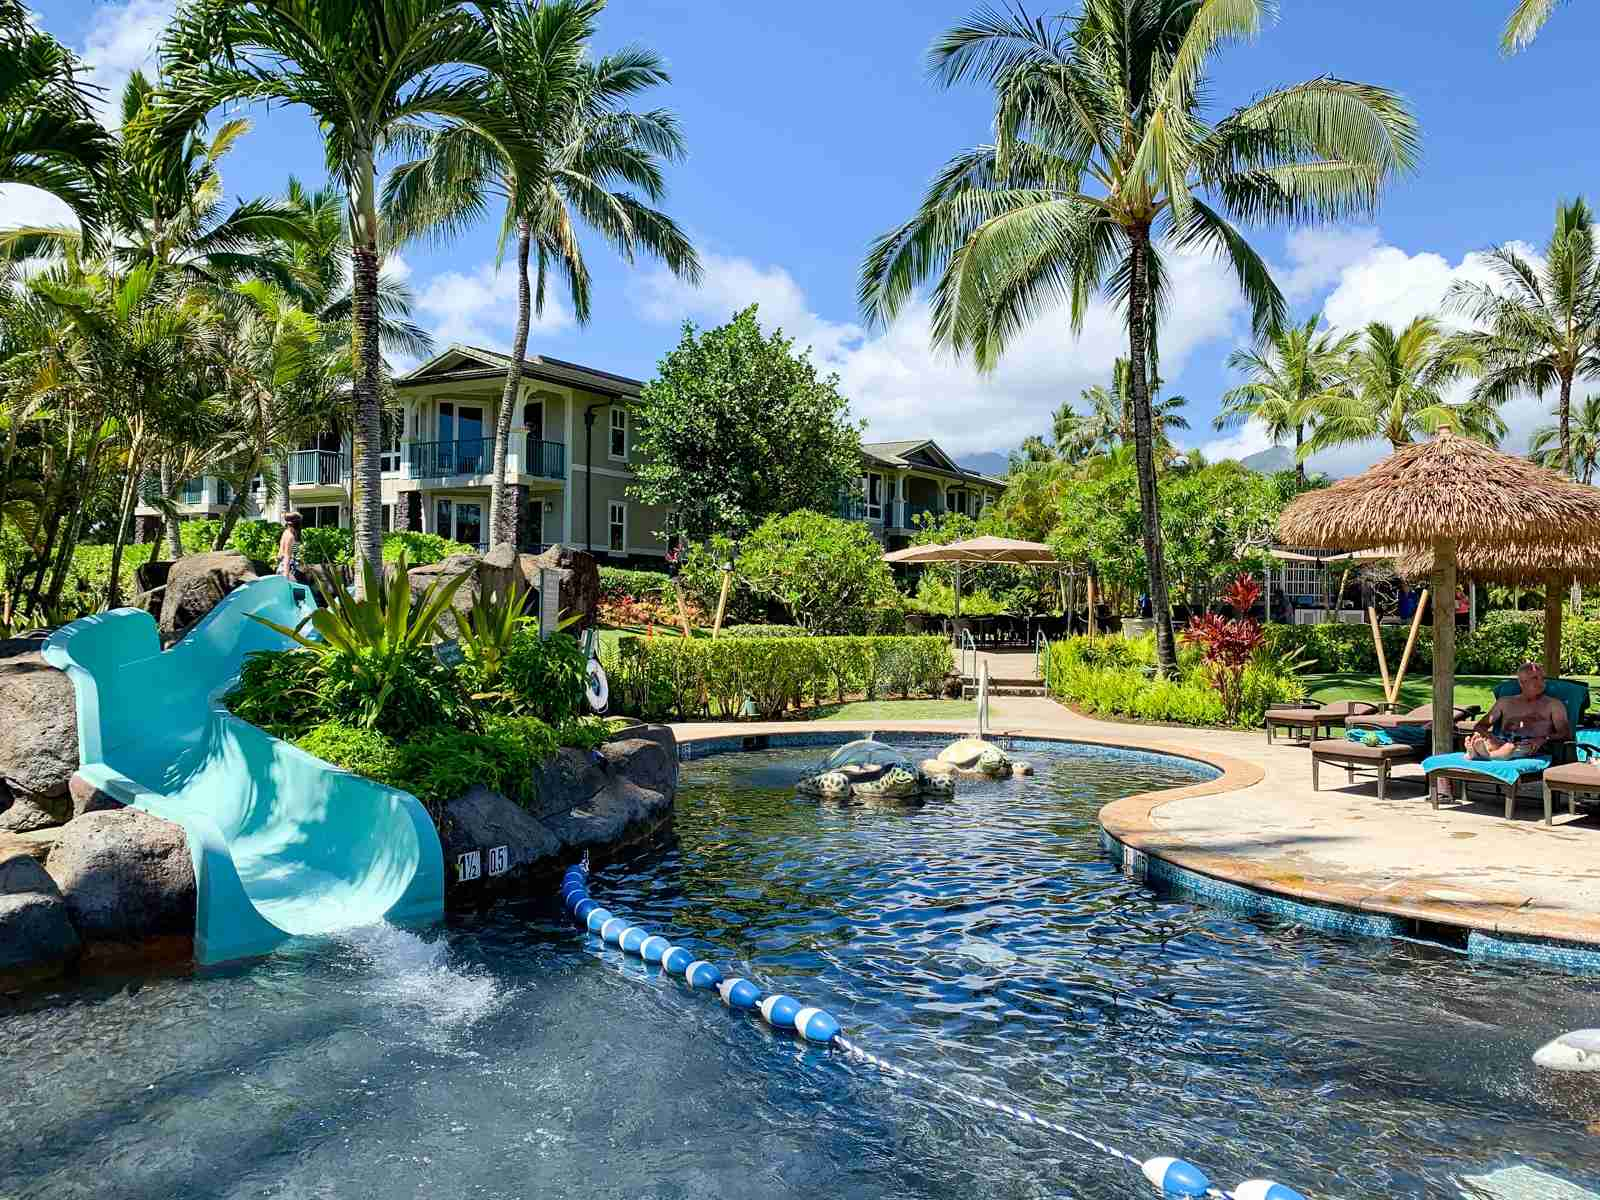 Westin Princeville (Photo by Summer Hull / The Points Guy)